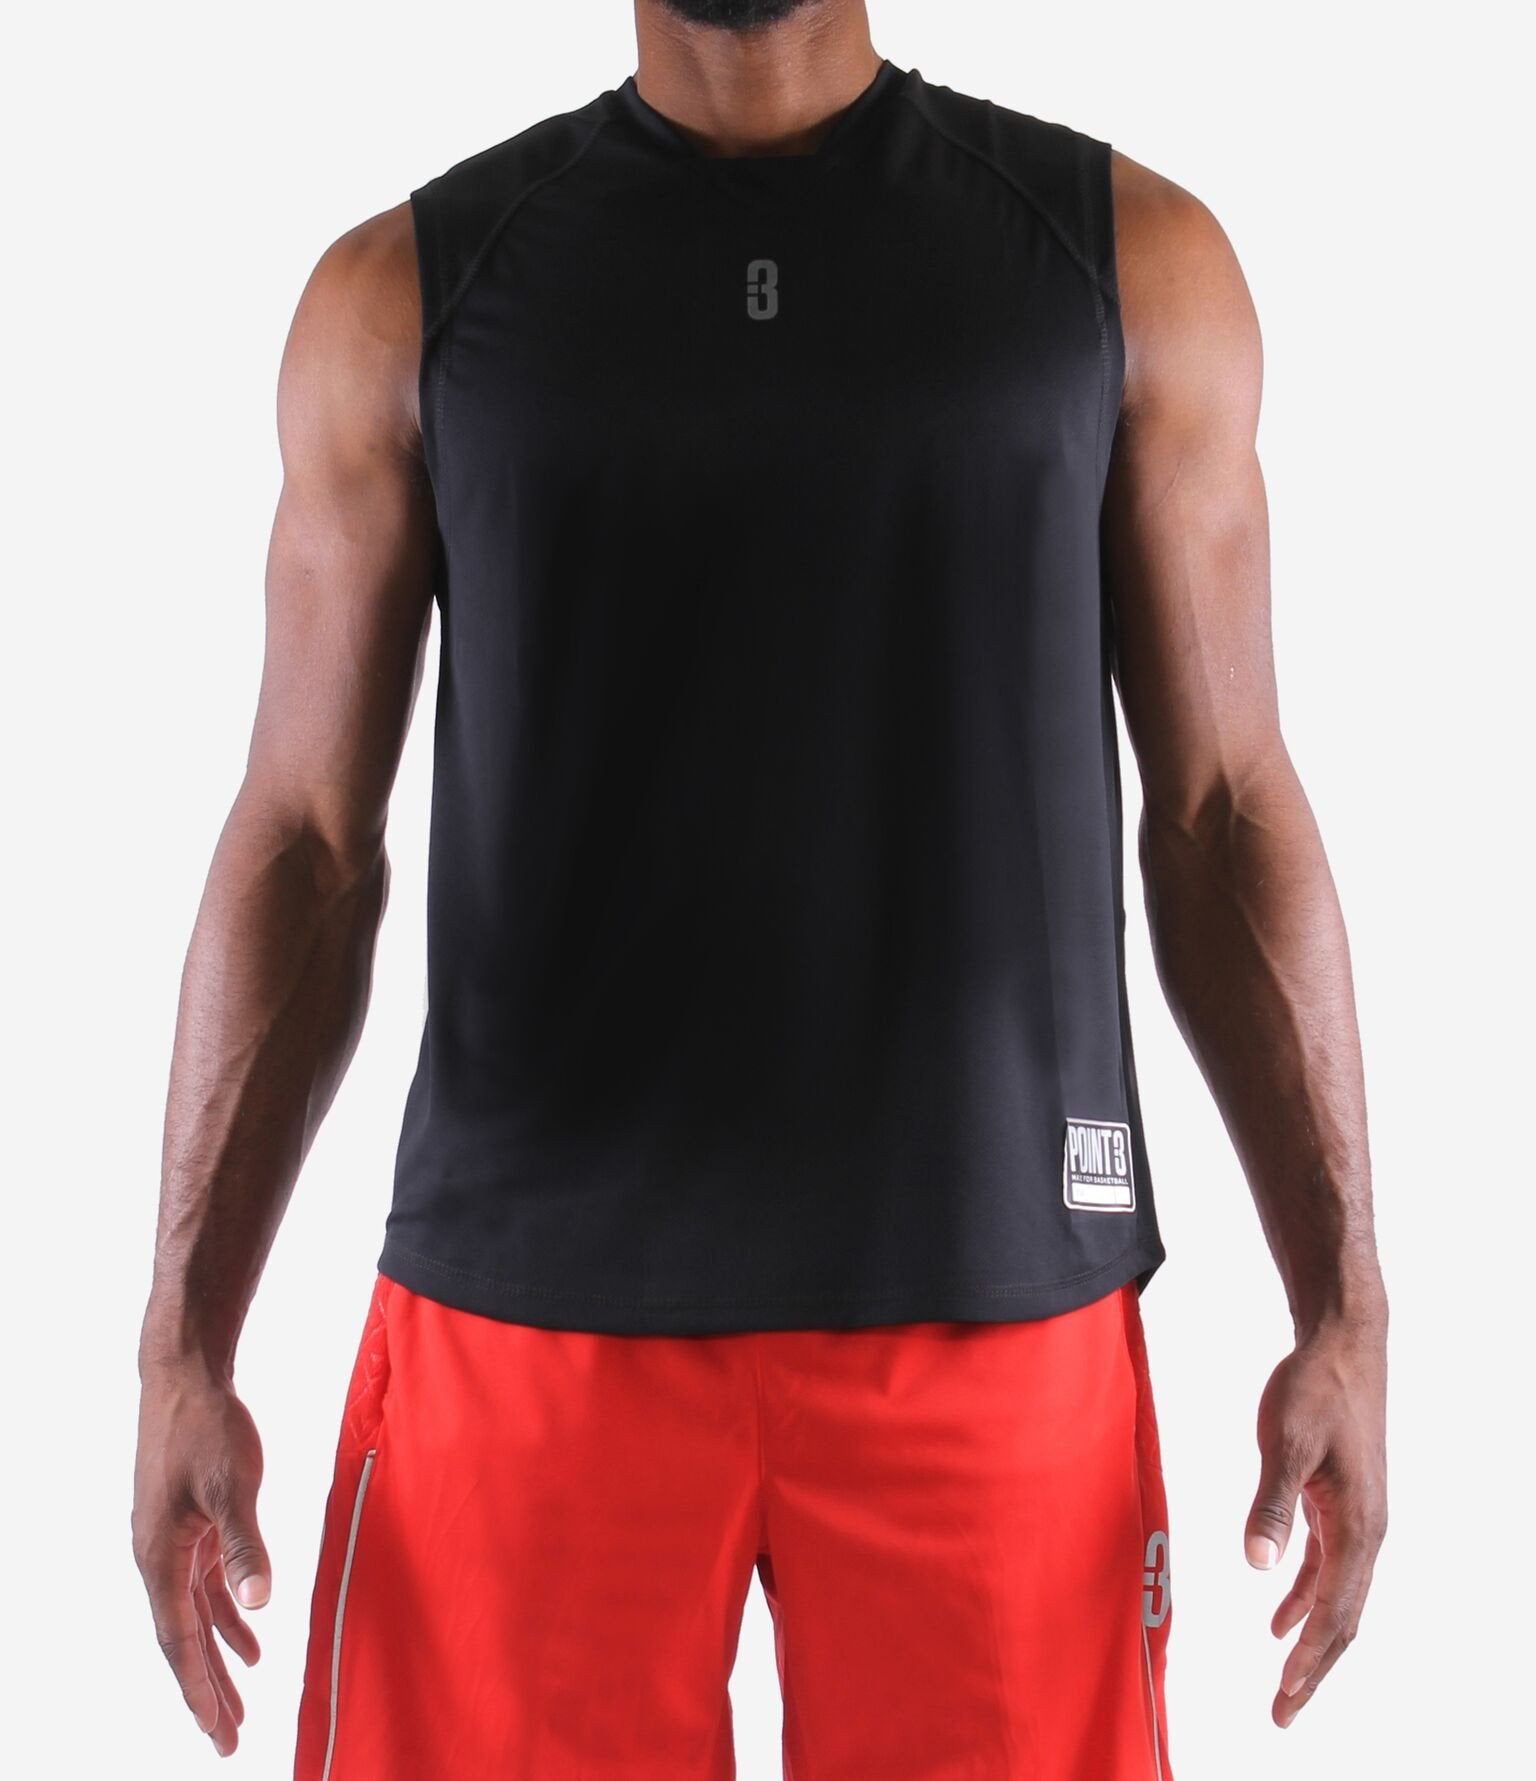 O.T. SLEEVELESS WORKOUT TOP